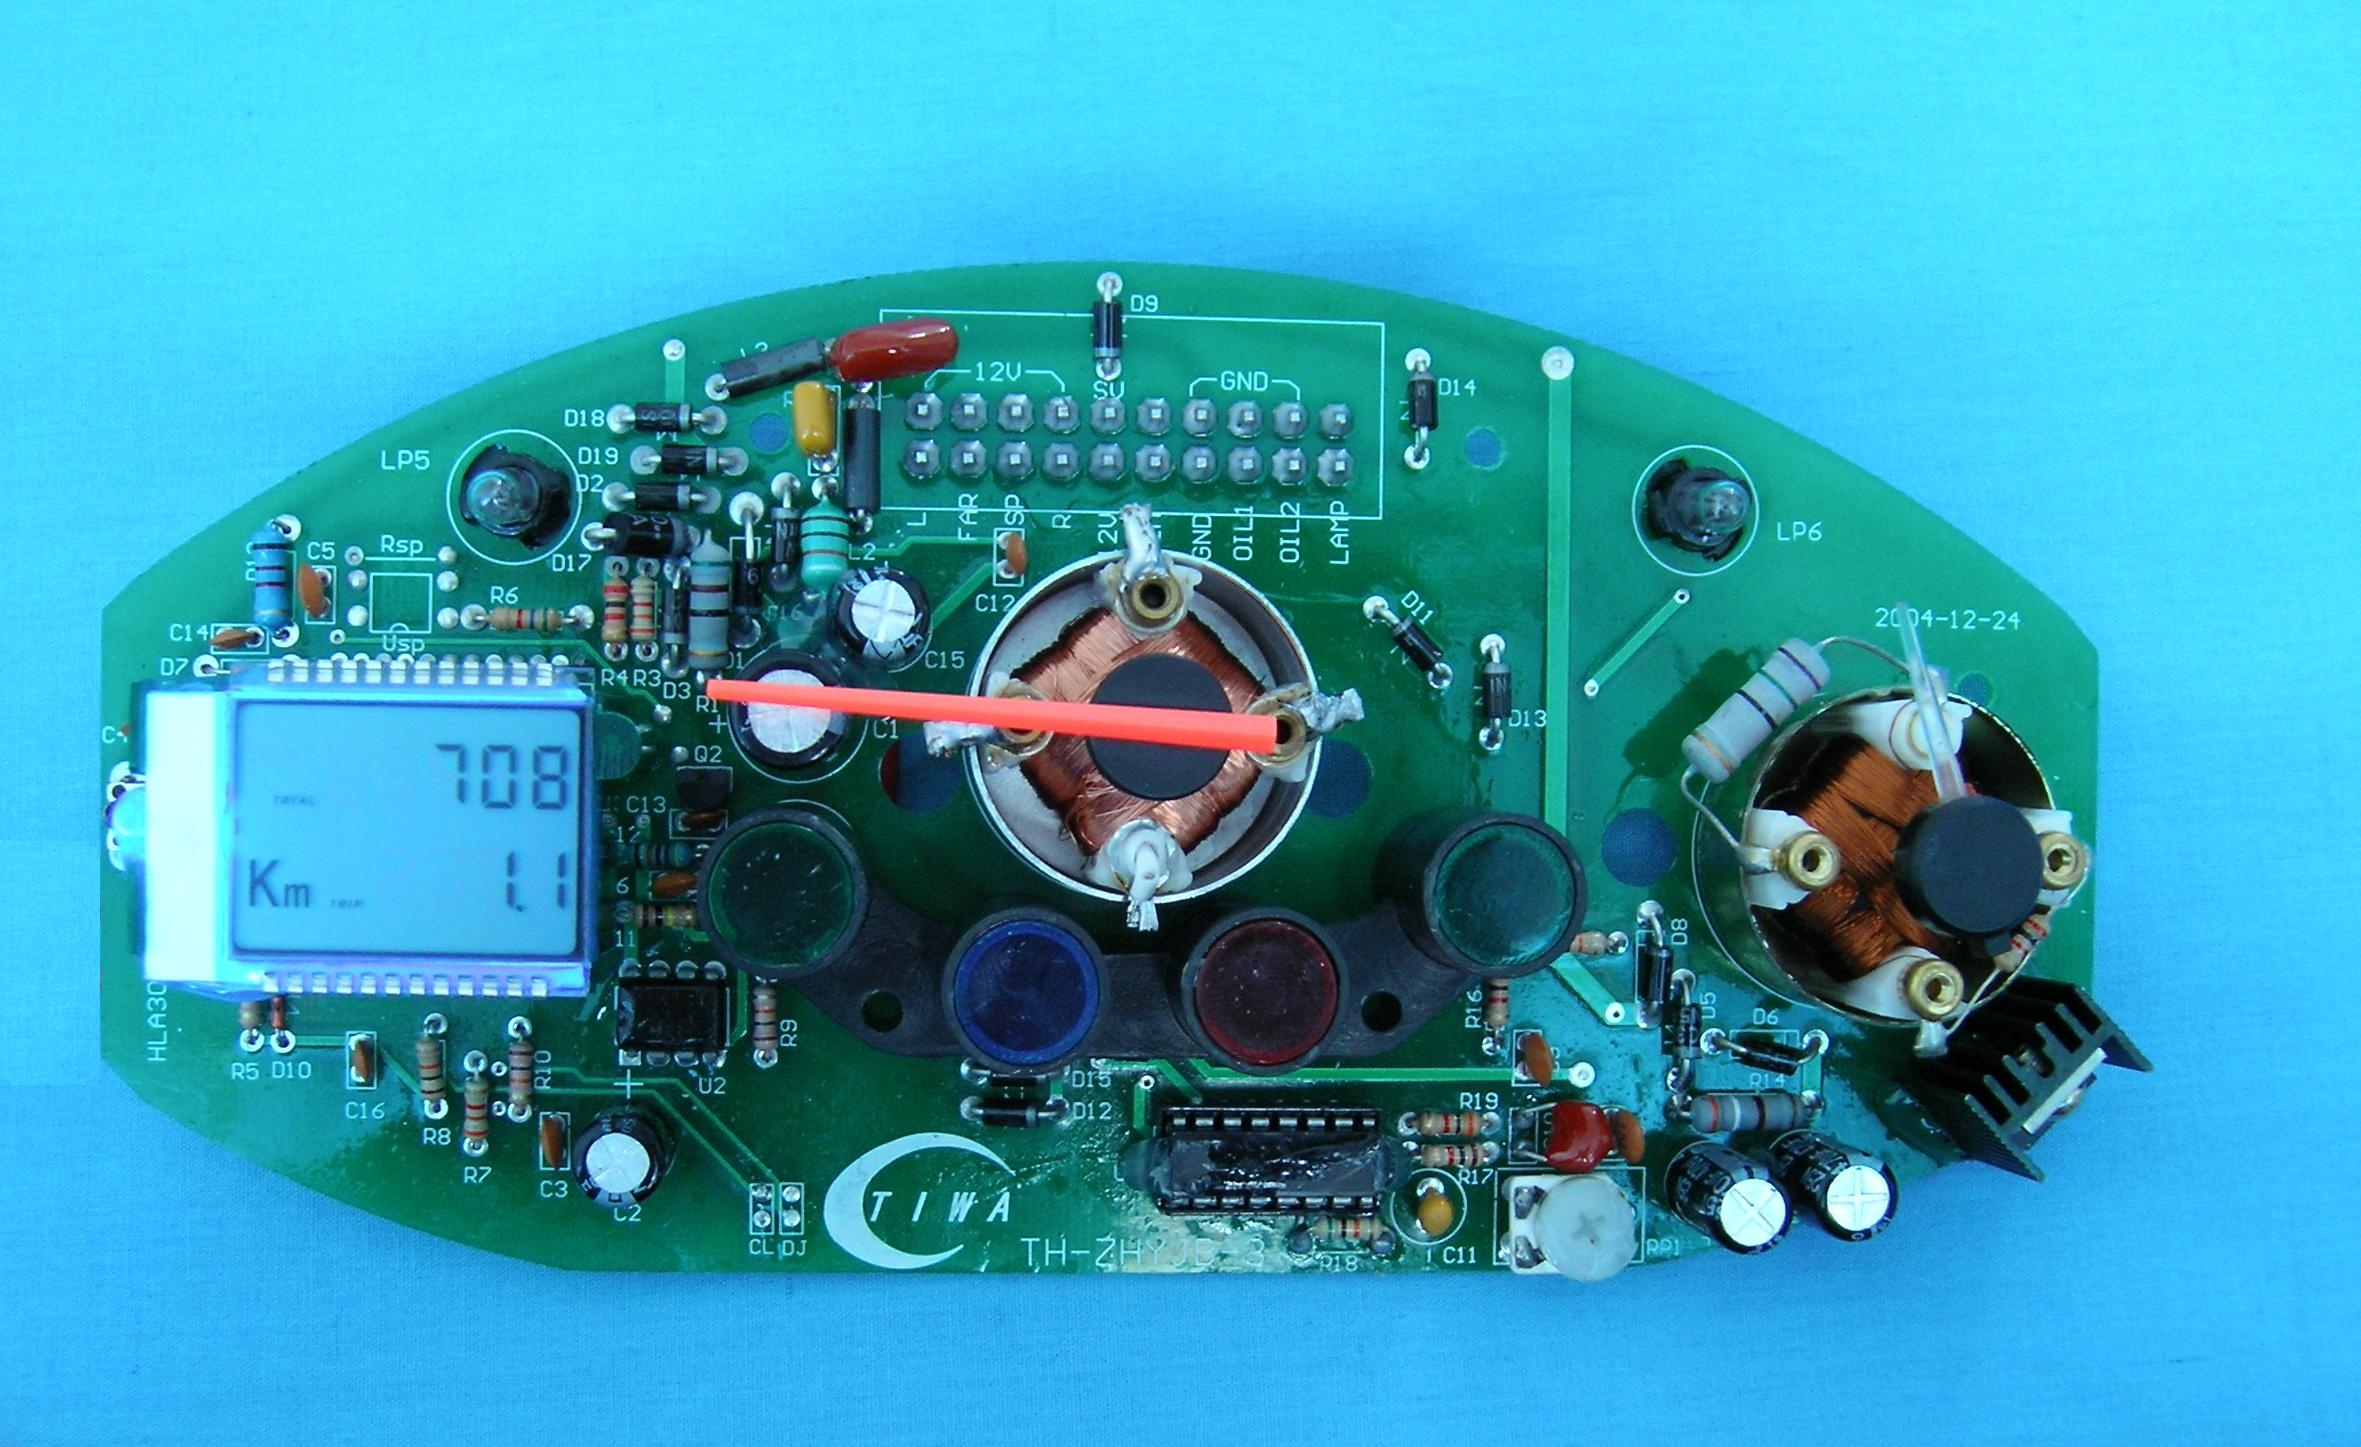 The core of LCD digital Mileage meter